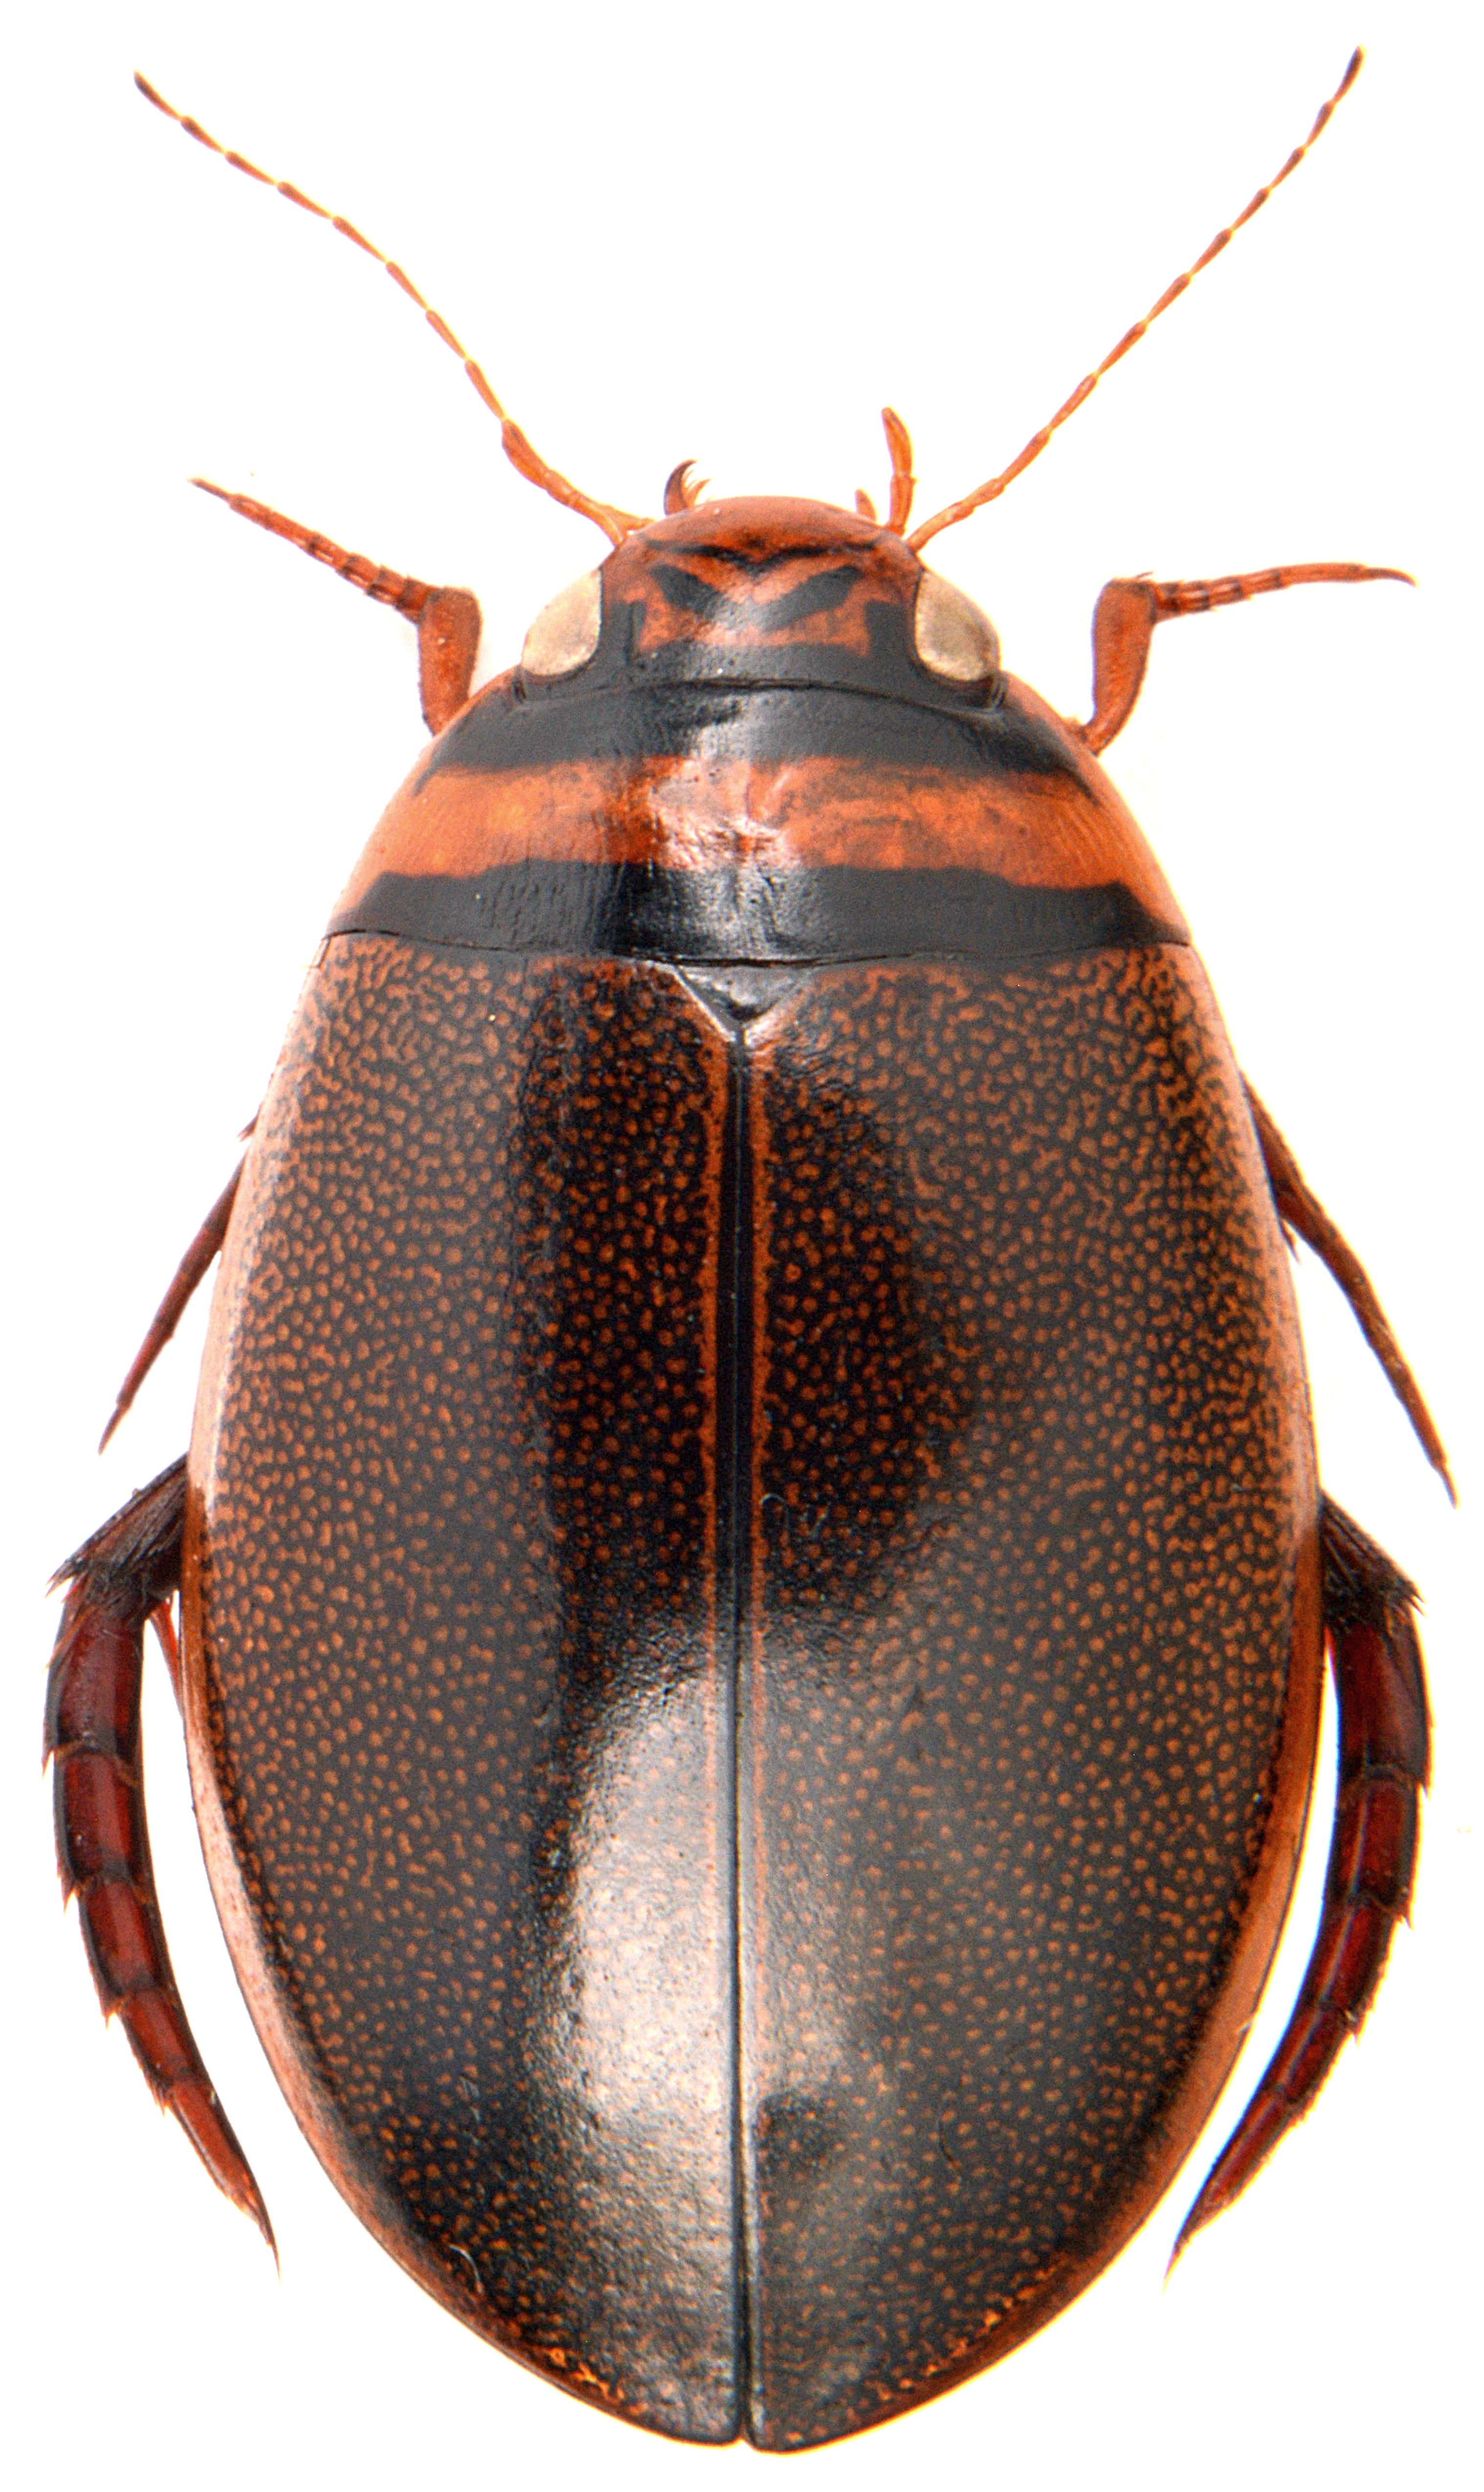 Graphoderus cinereus